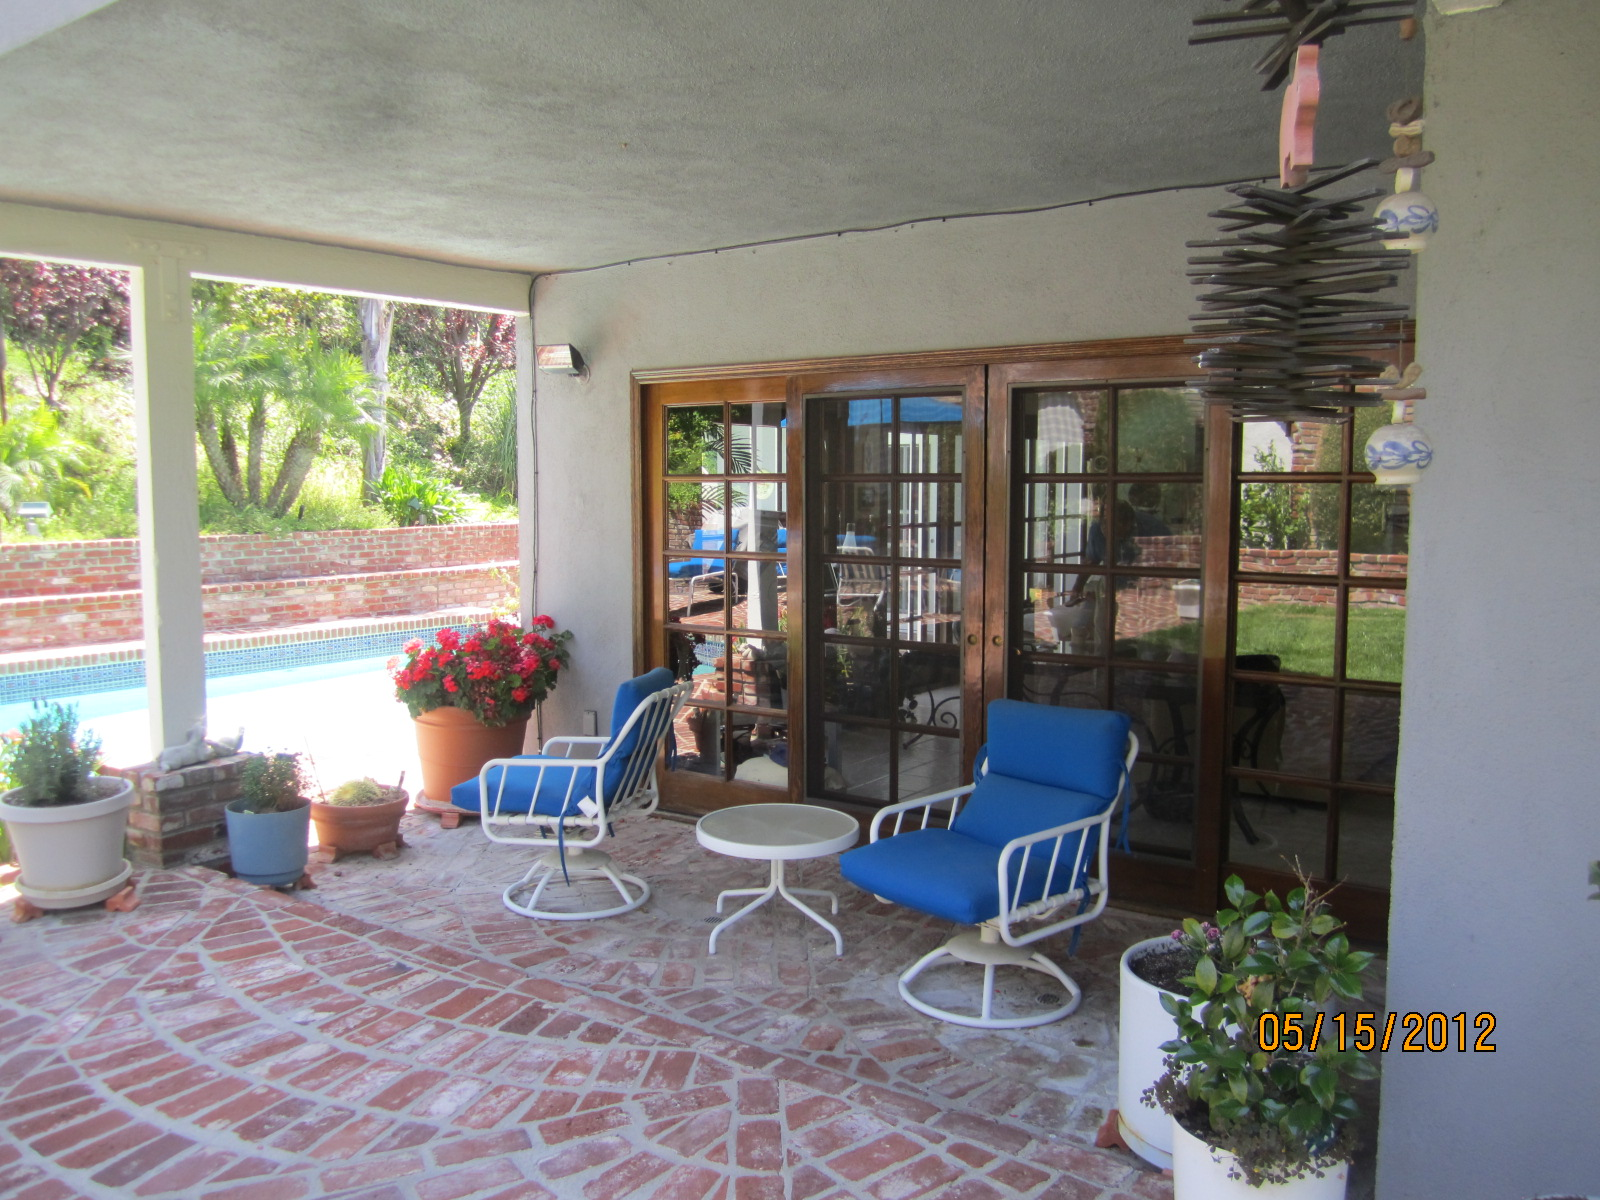 Sliding Patio Screen Doors In Granada Hills Screen Doors